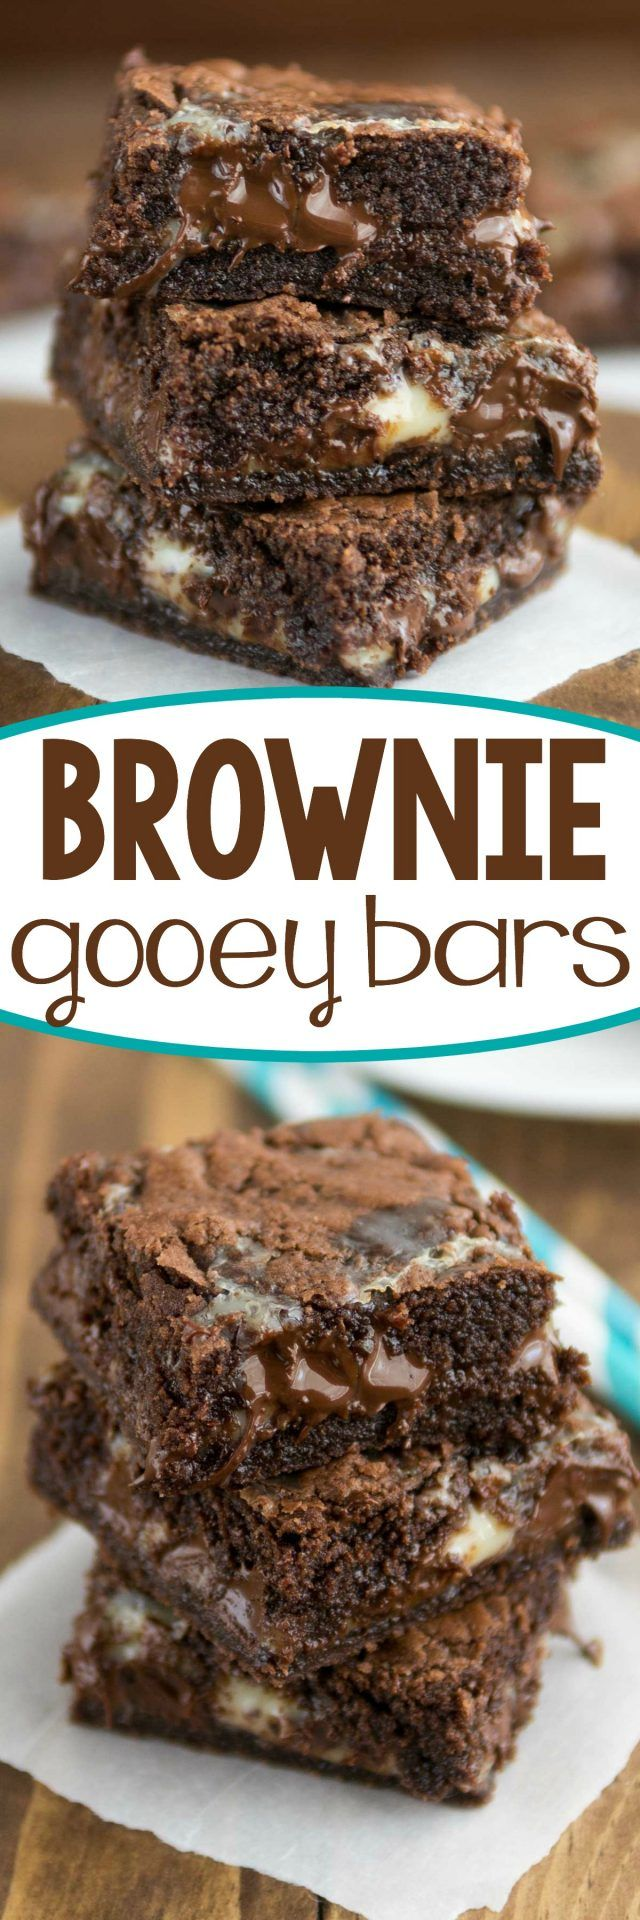 Easy Brownie Gooey Bars - this recipe is so good! Fudgy brownies are filled with gooey chocolate. We can never stop eating them!: